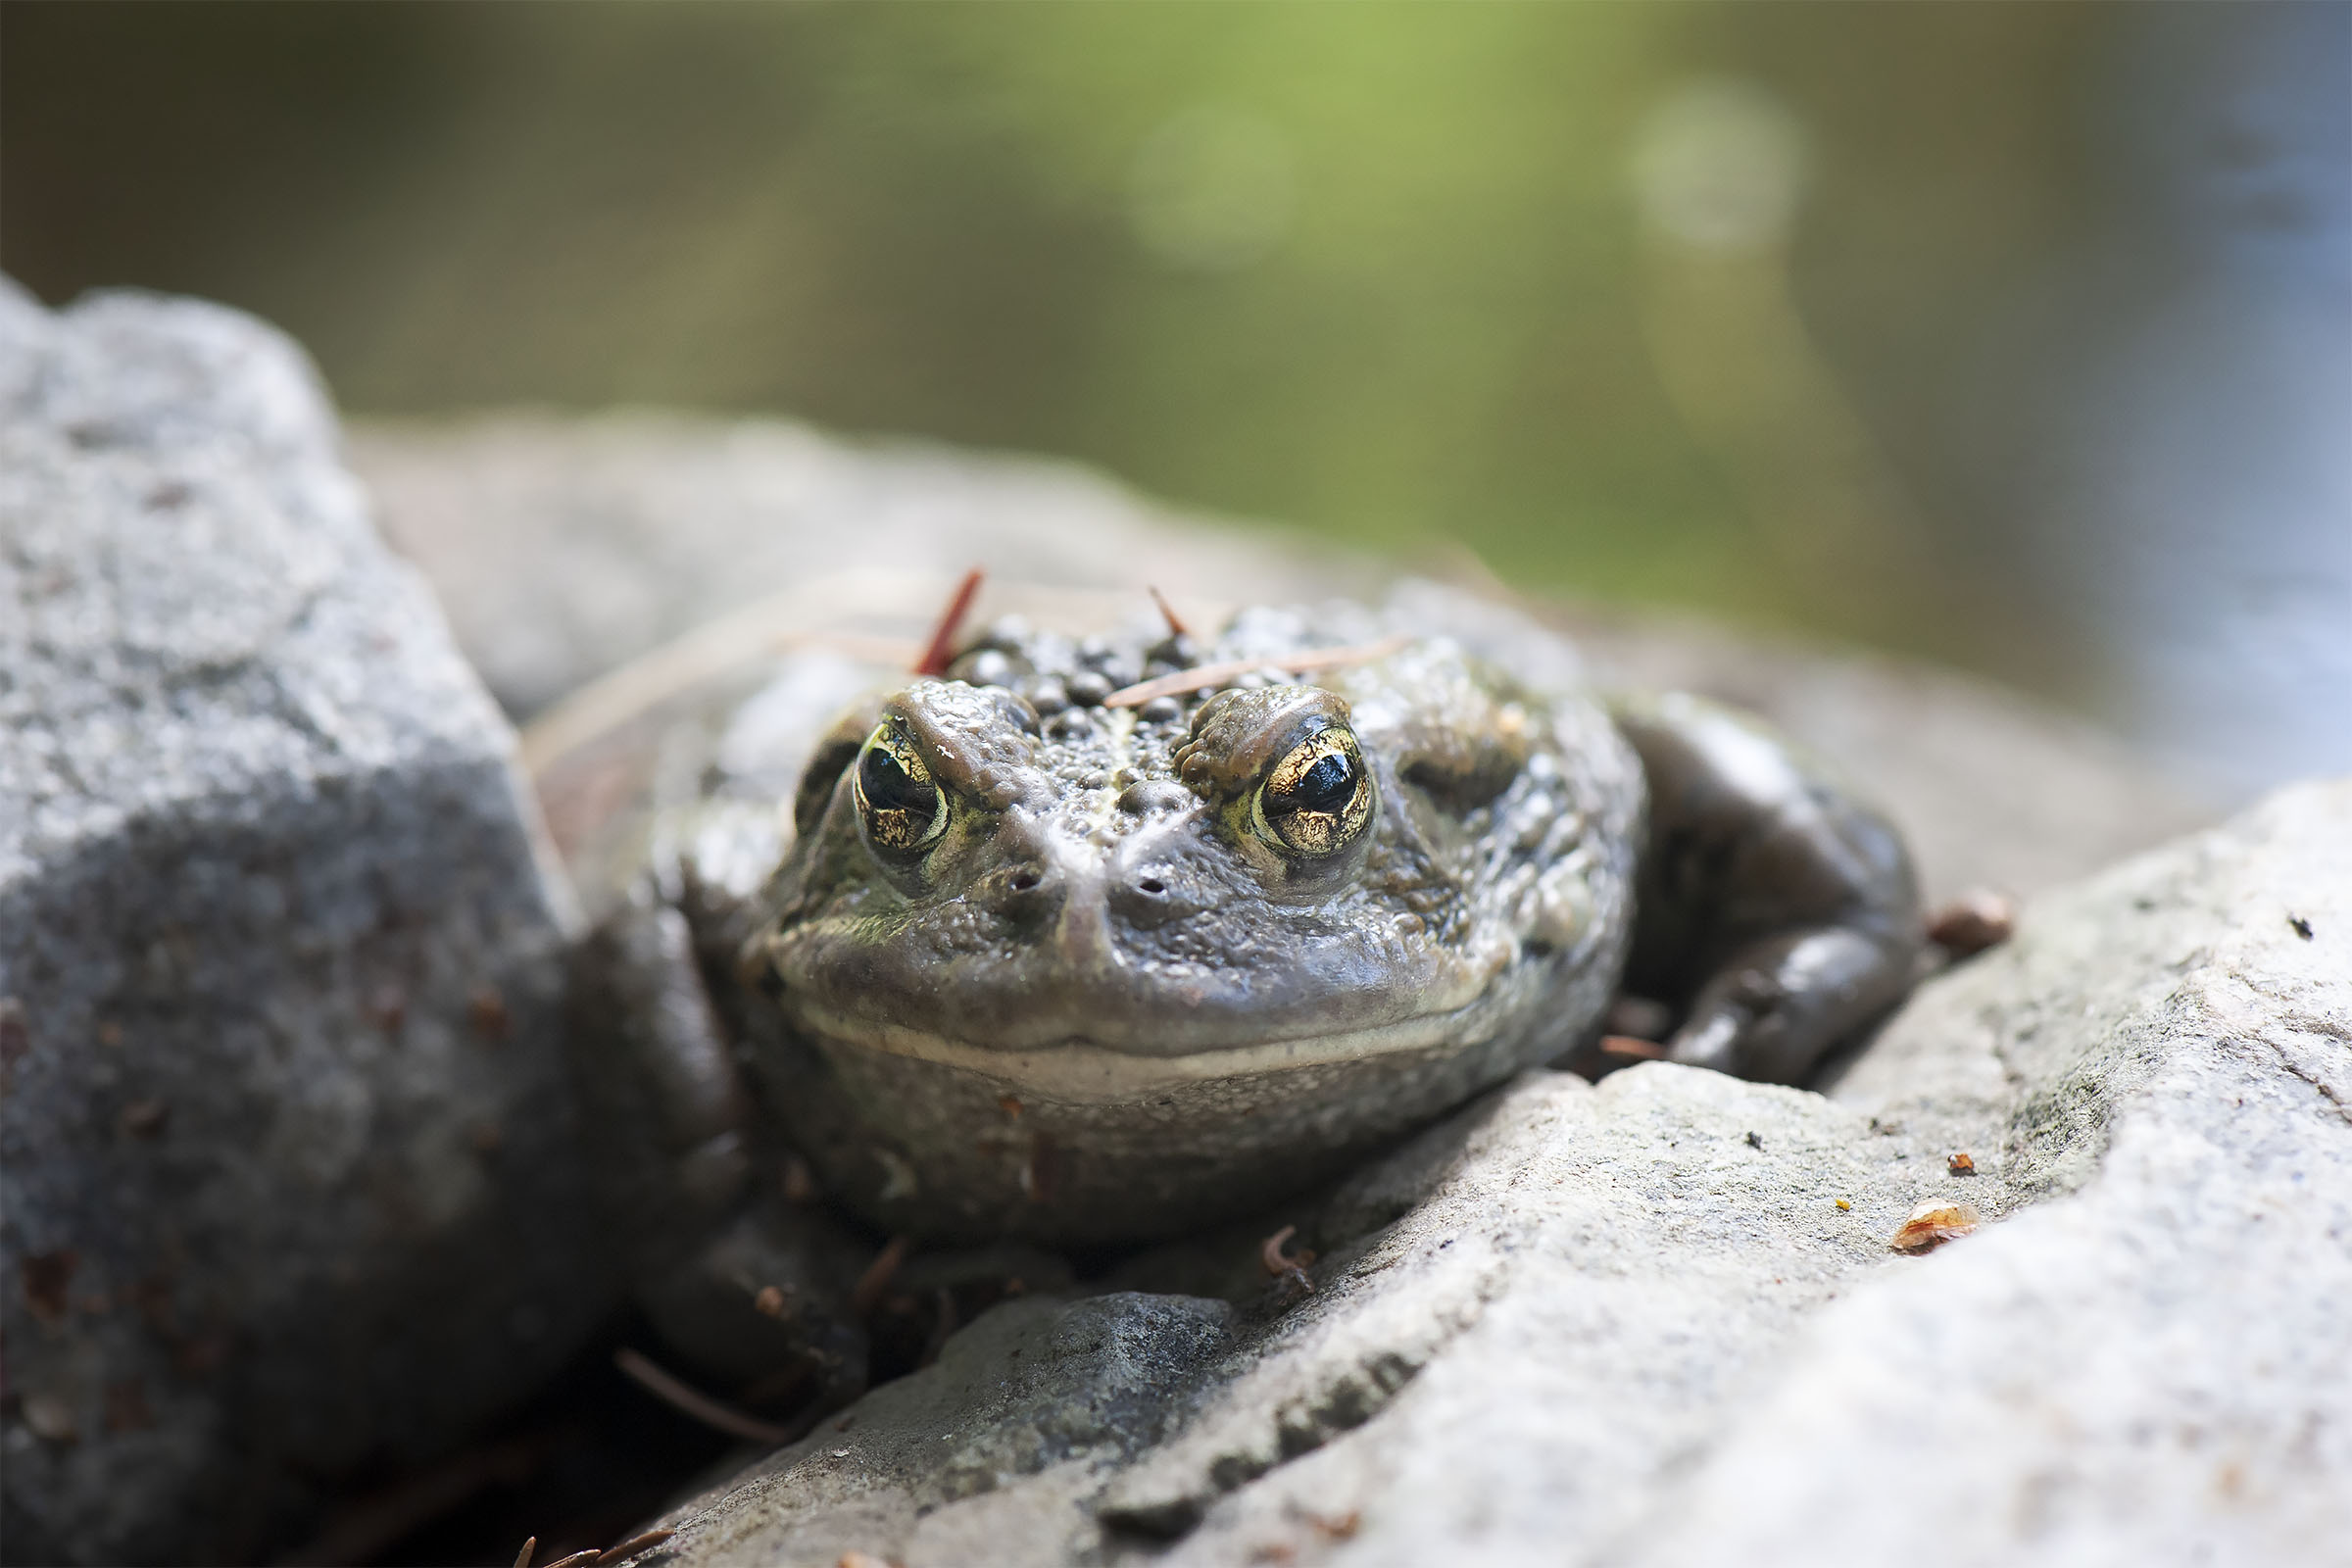 Toad_9012